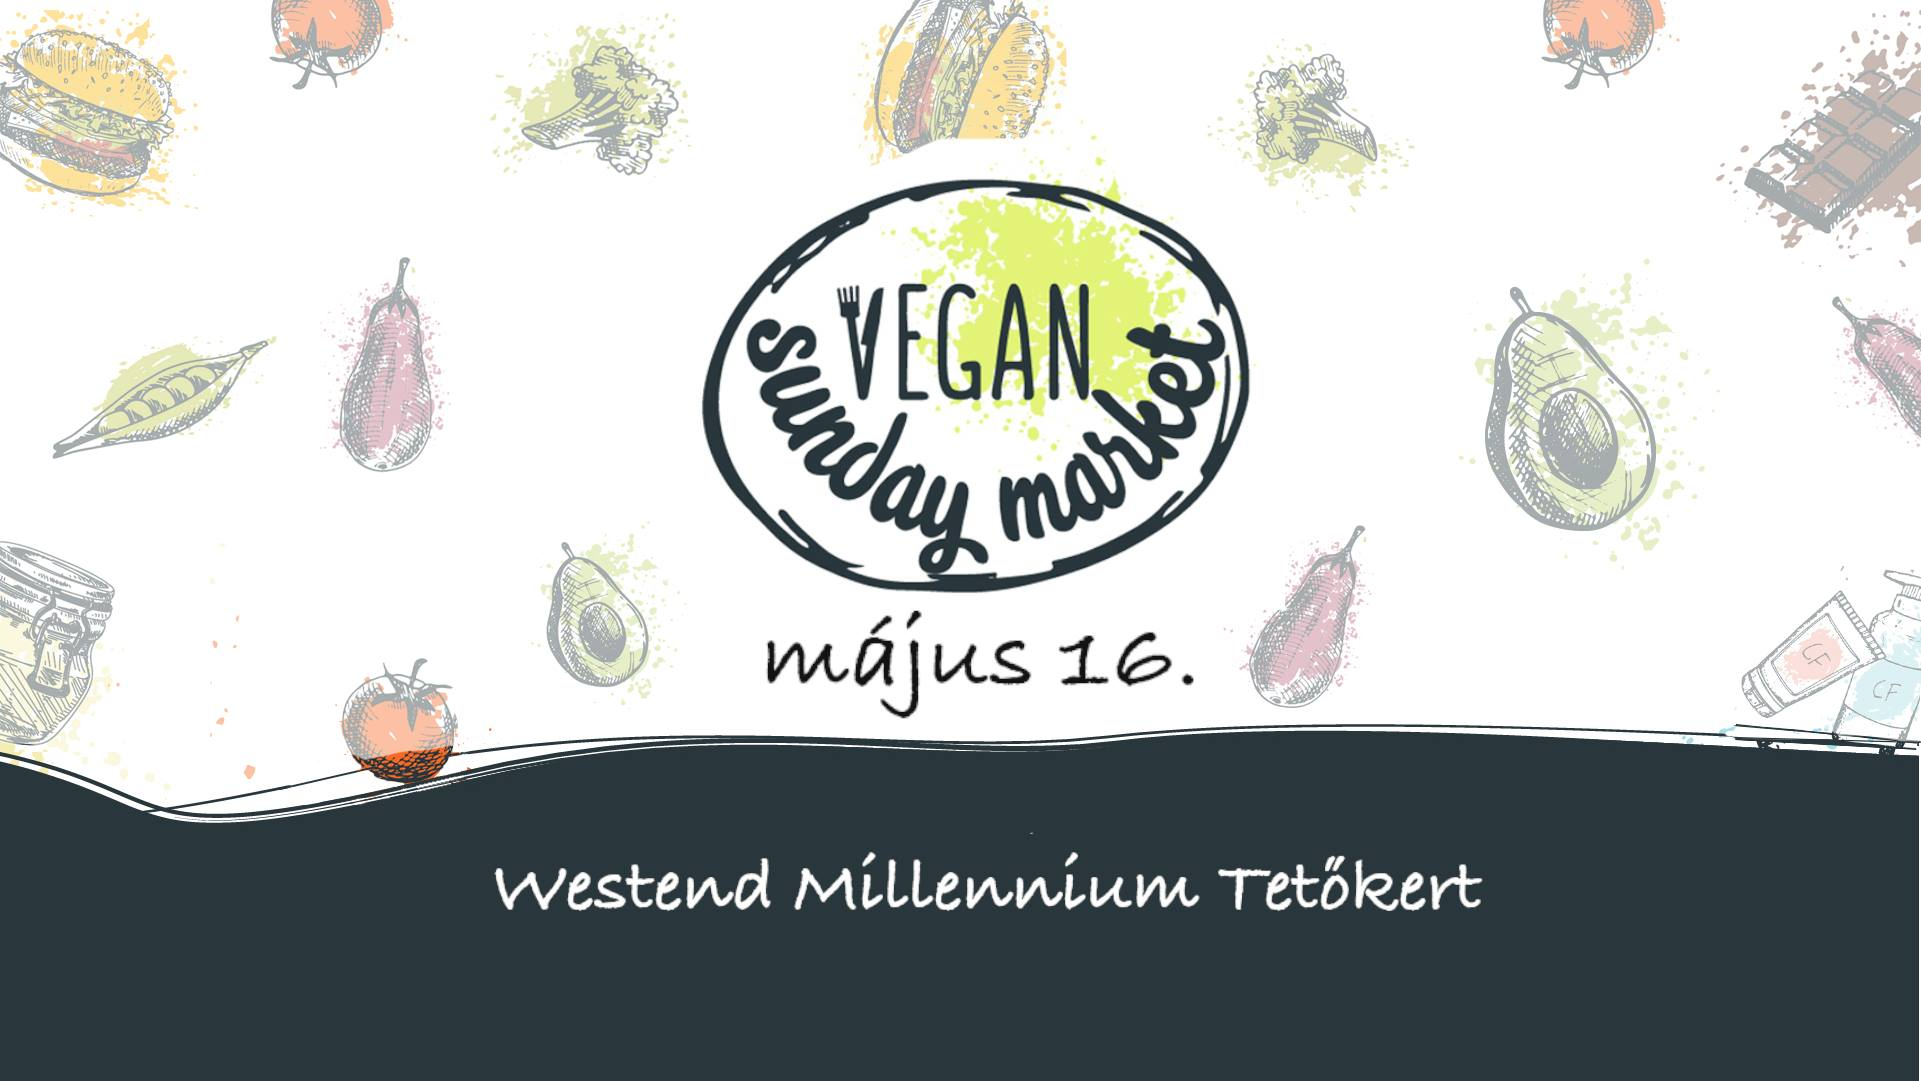 Vegan Weekend Market, Westend Millenium Rooftop, 16 May